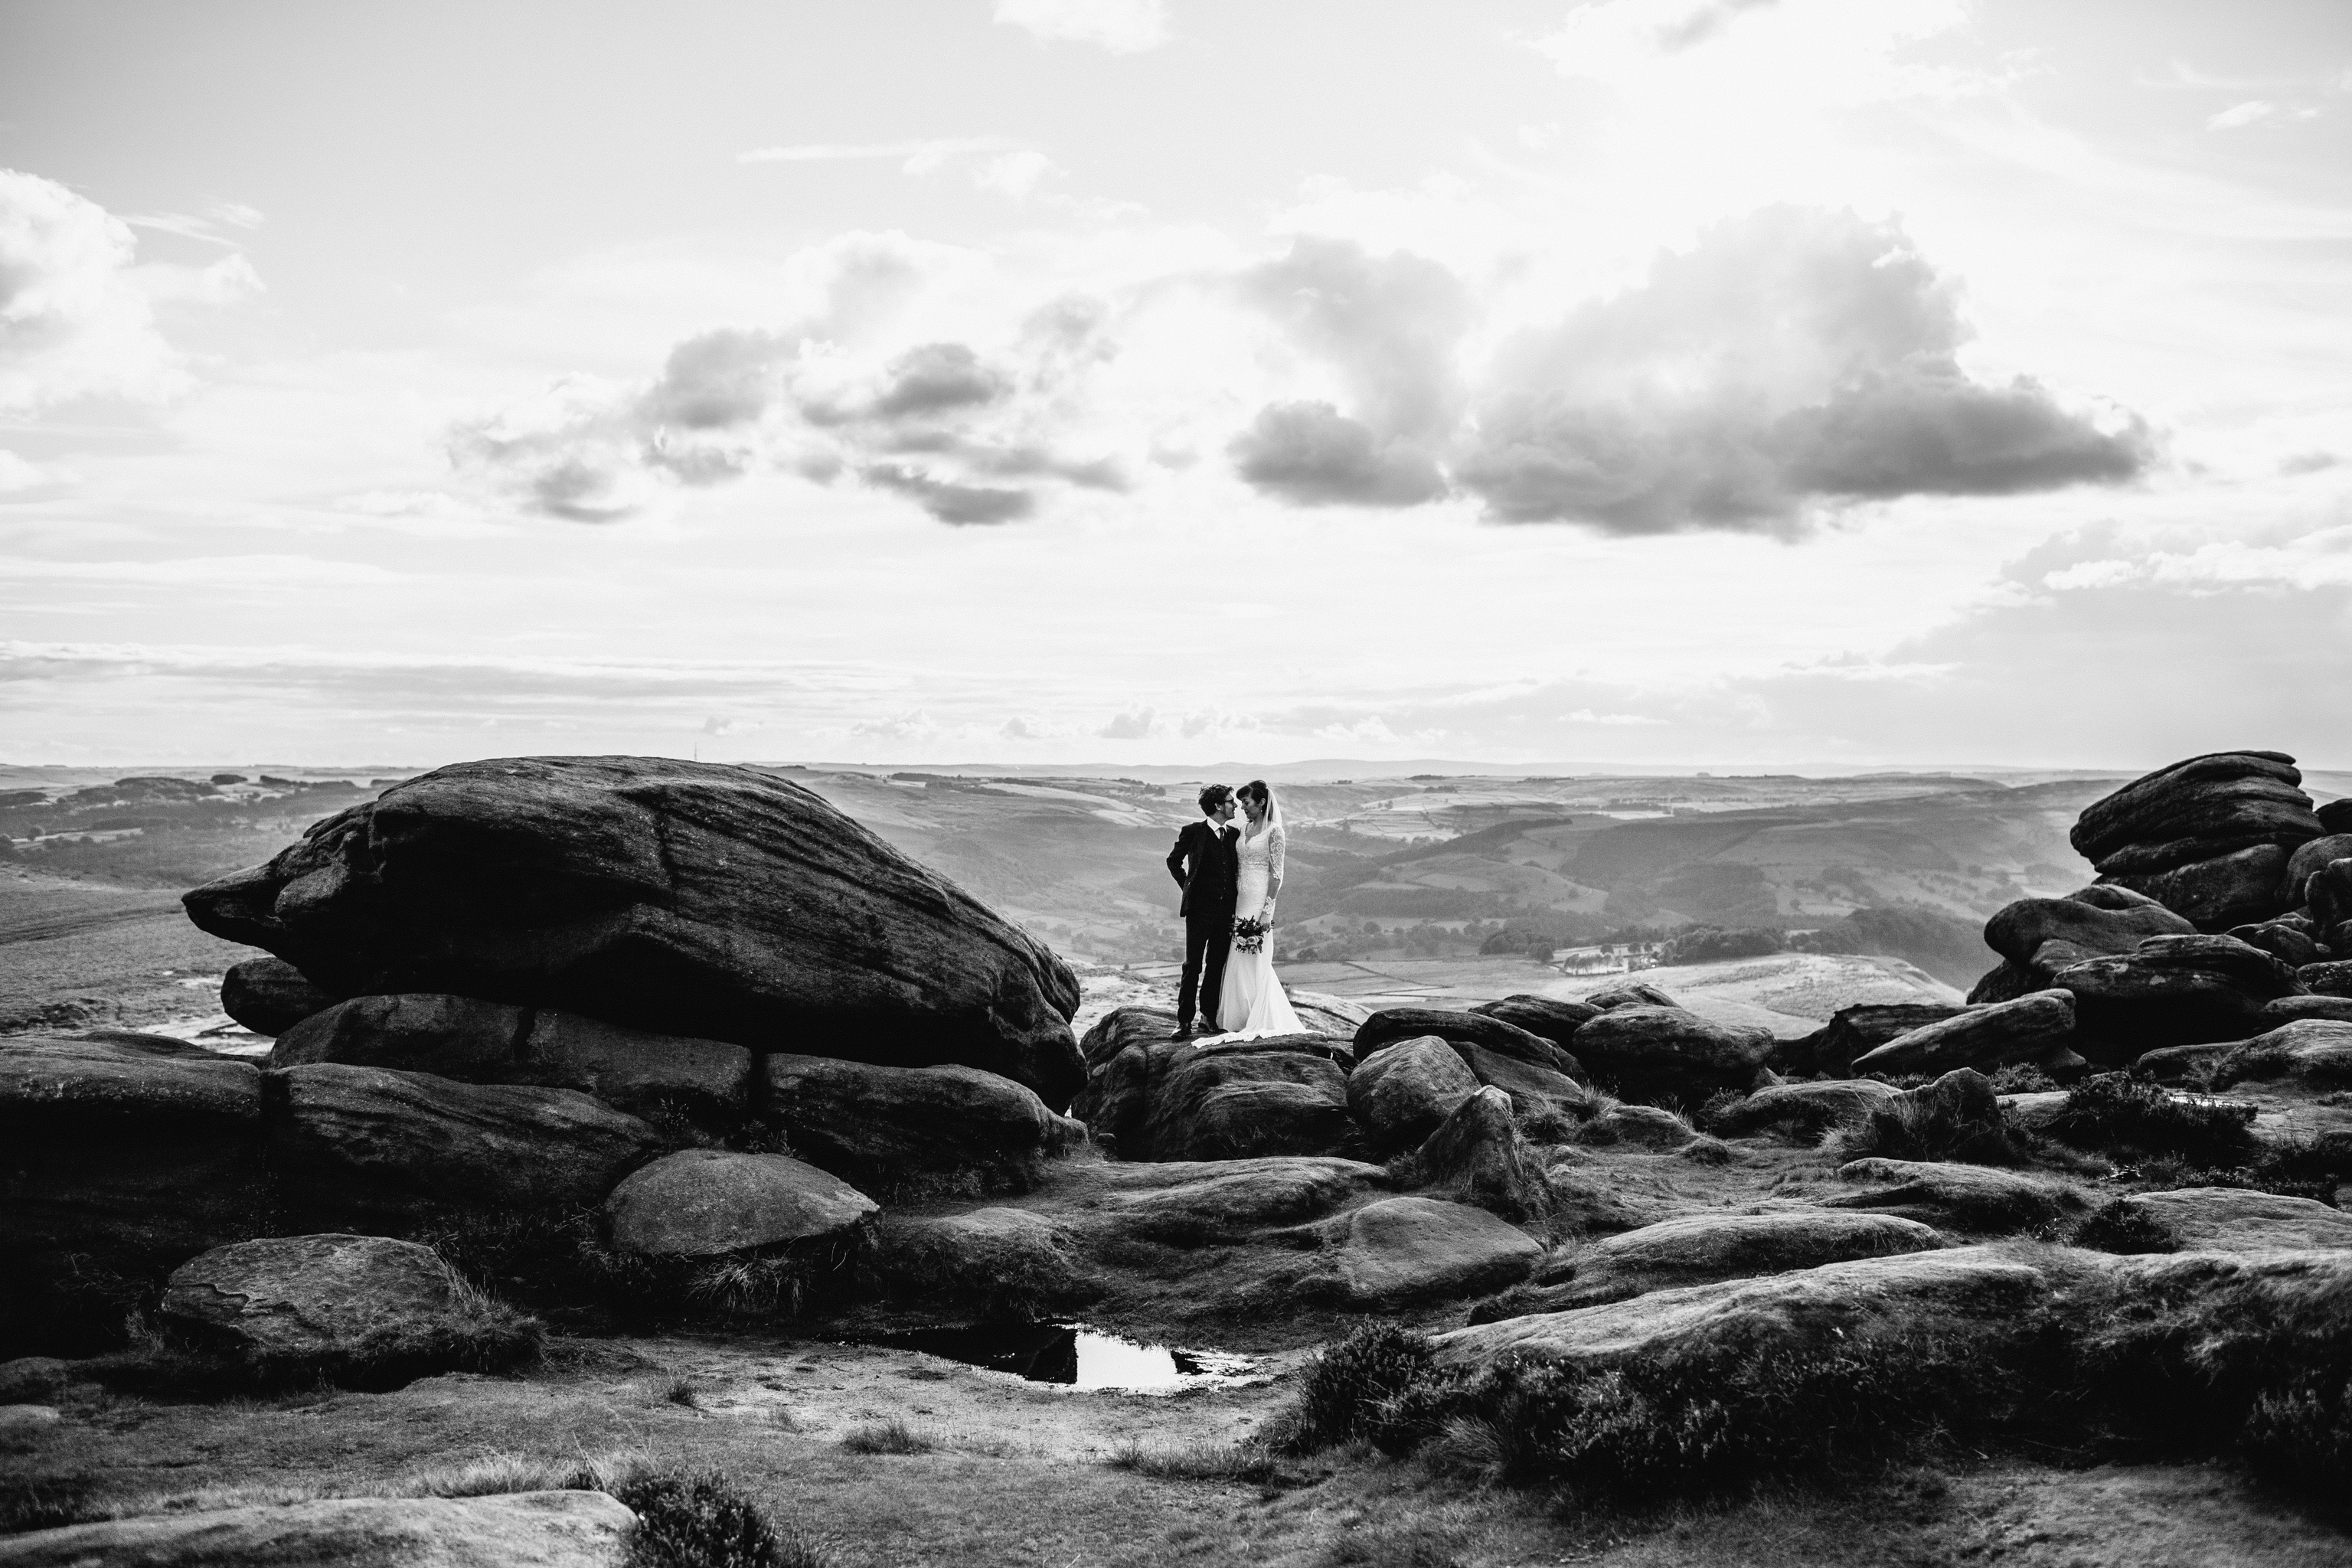 epic photo of wedding couple standing together on top of a rock